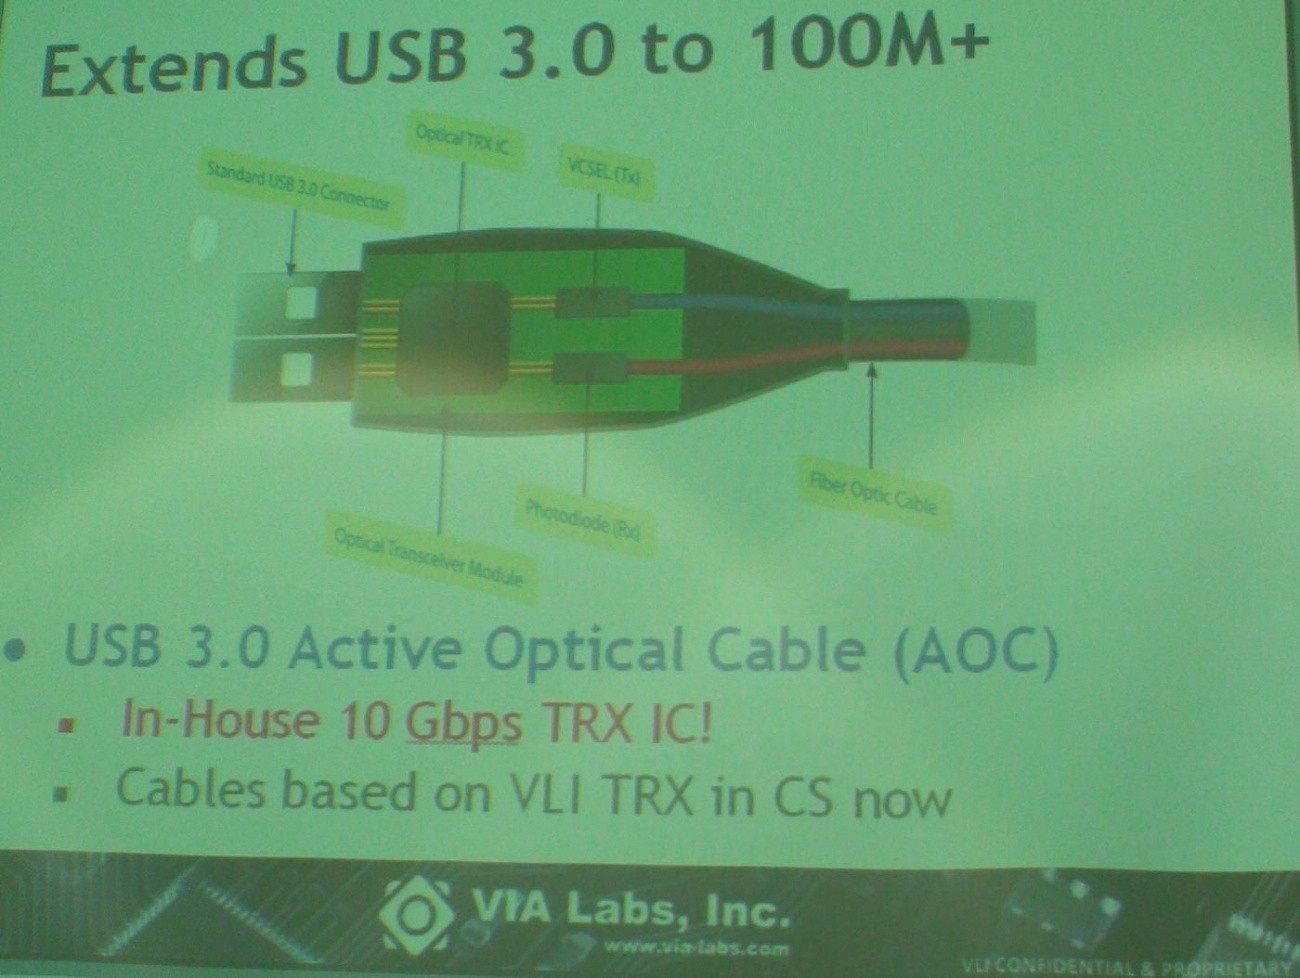 via_shows_us_its_usb_3_0_active_optical_cable_for_cabling_length_of_around_100_meters